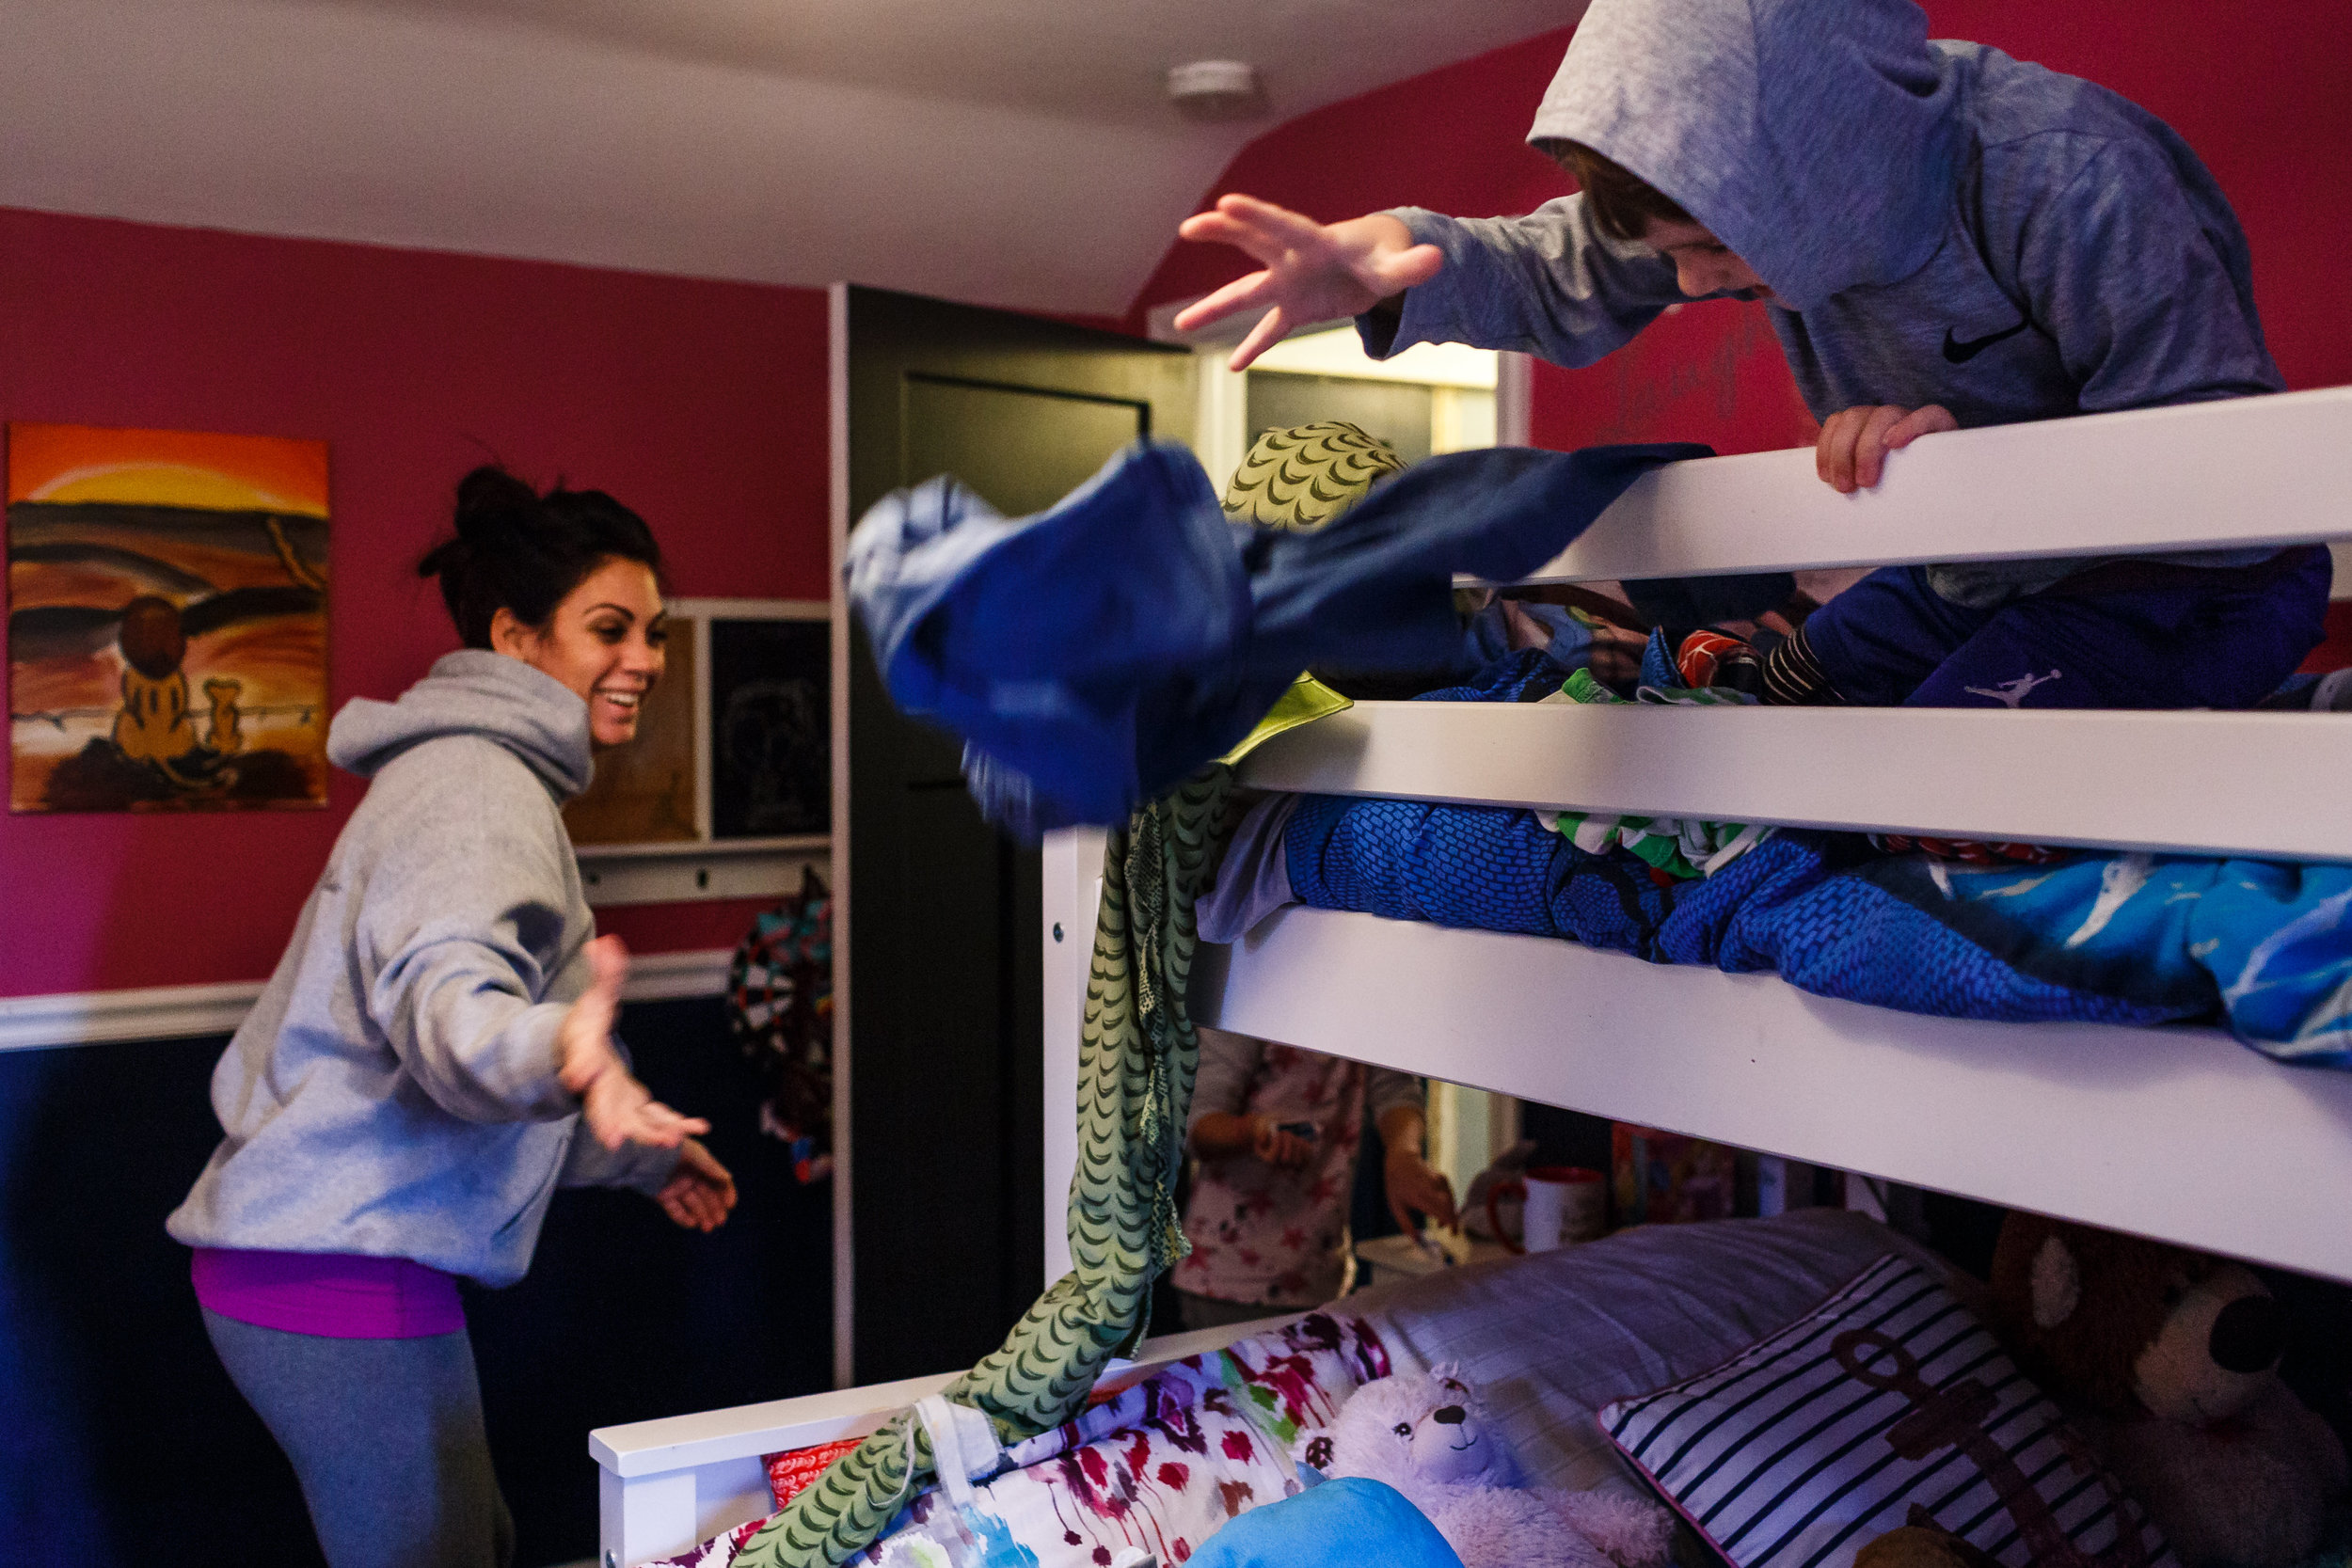 mom throwing clothes up to son on bunk bed